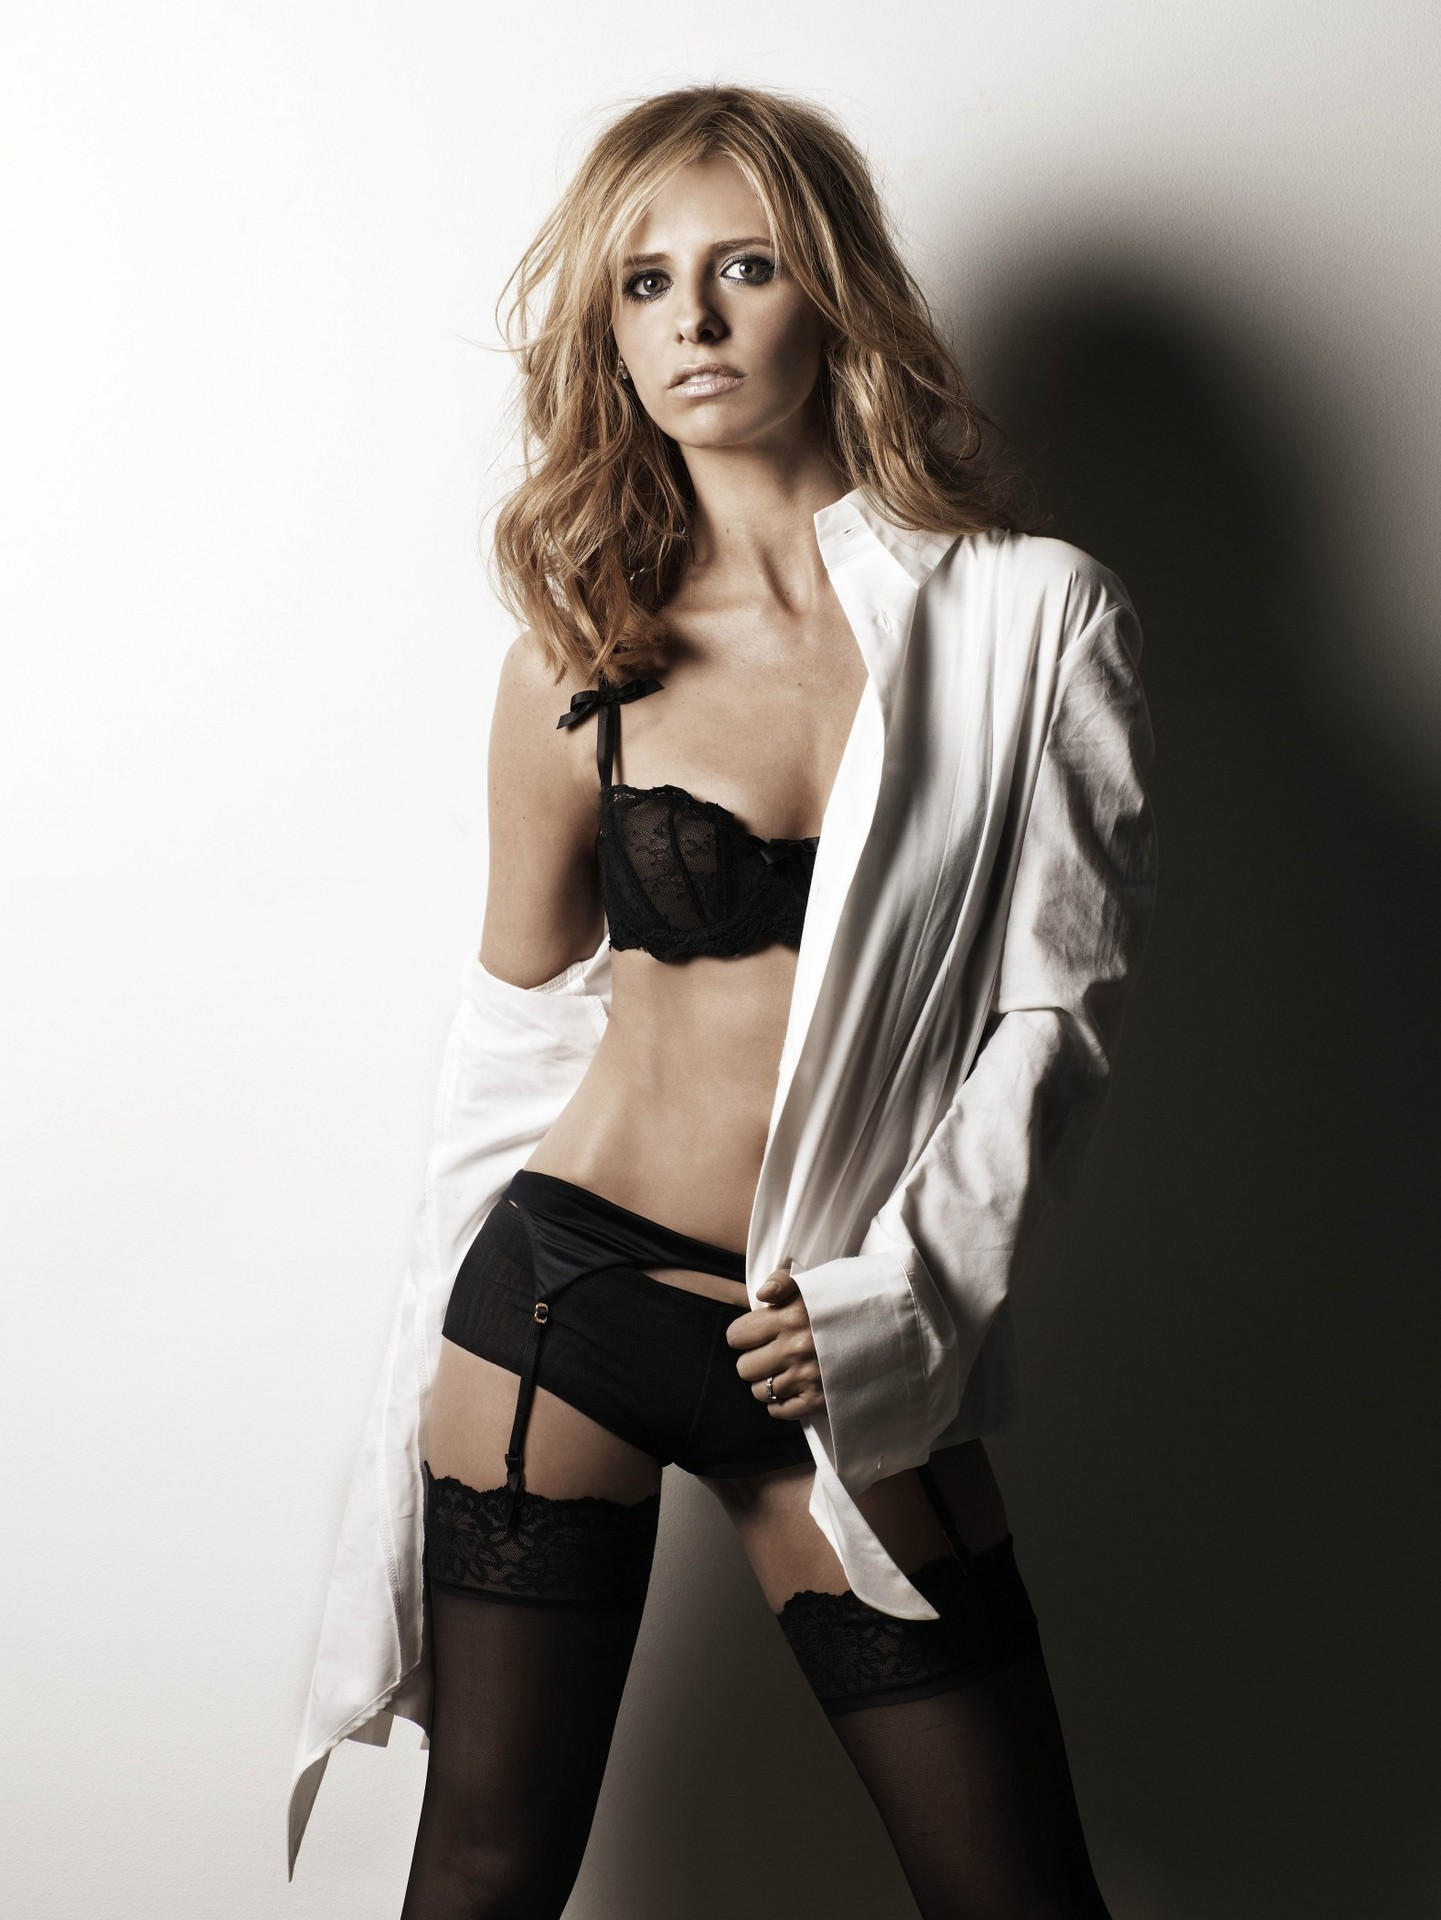 Sarah Michelle Gellar Hot Photos, Topless Pics Gallery